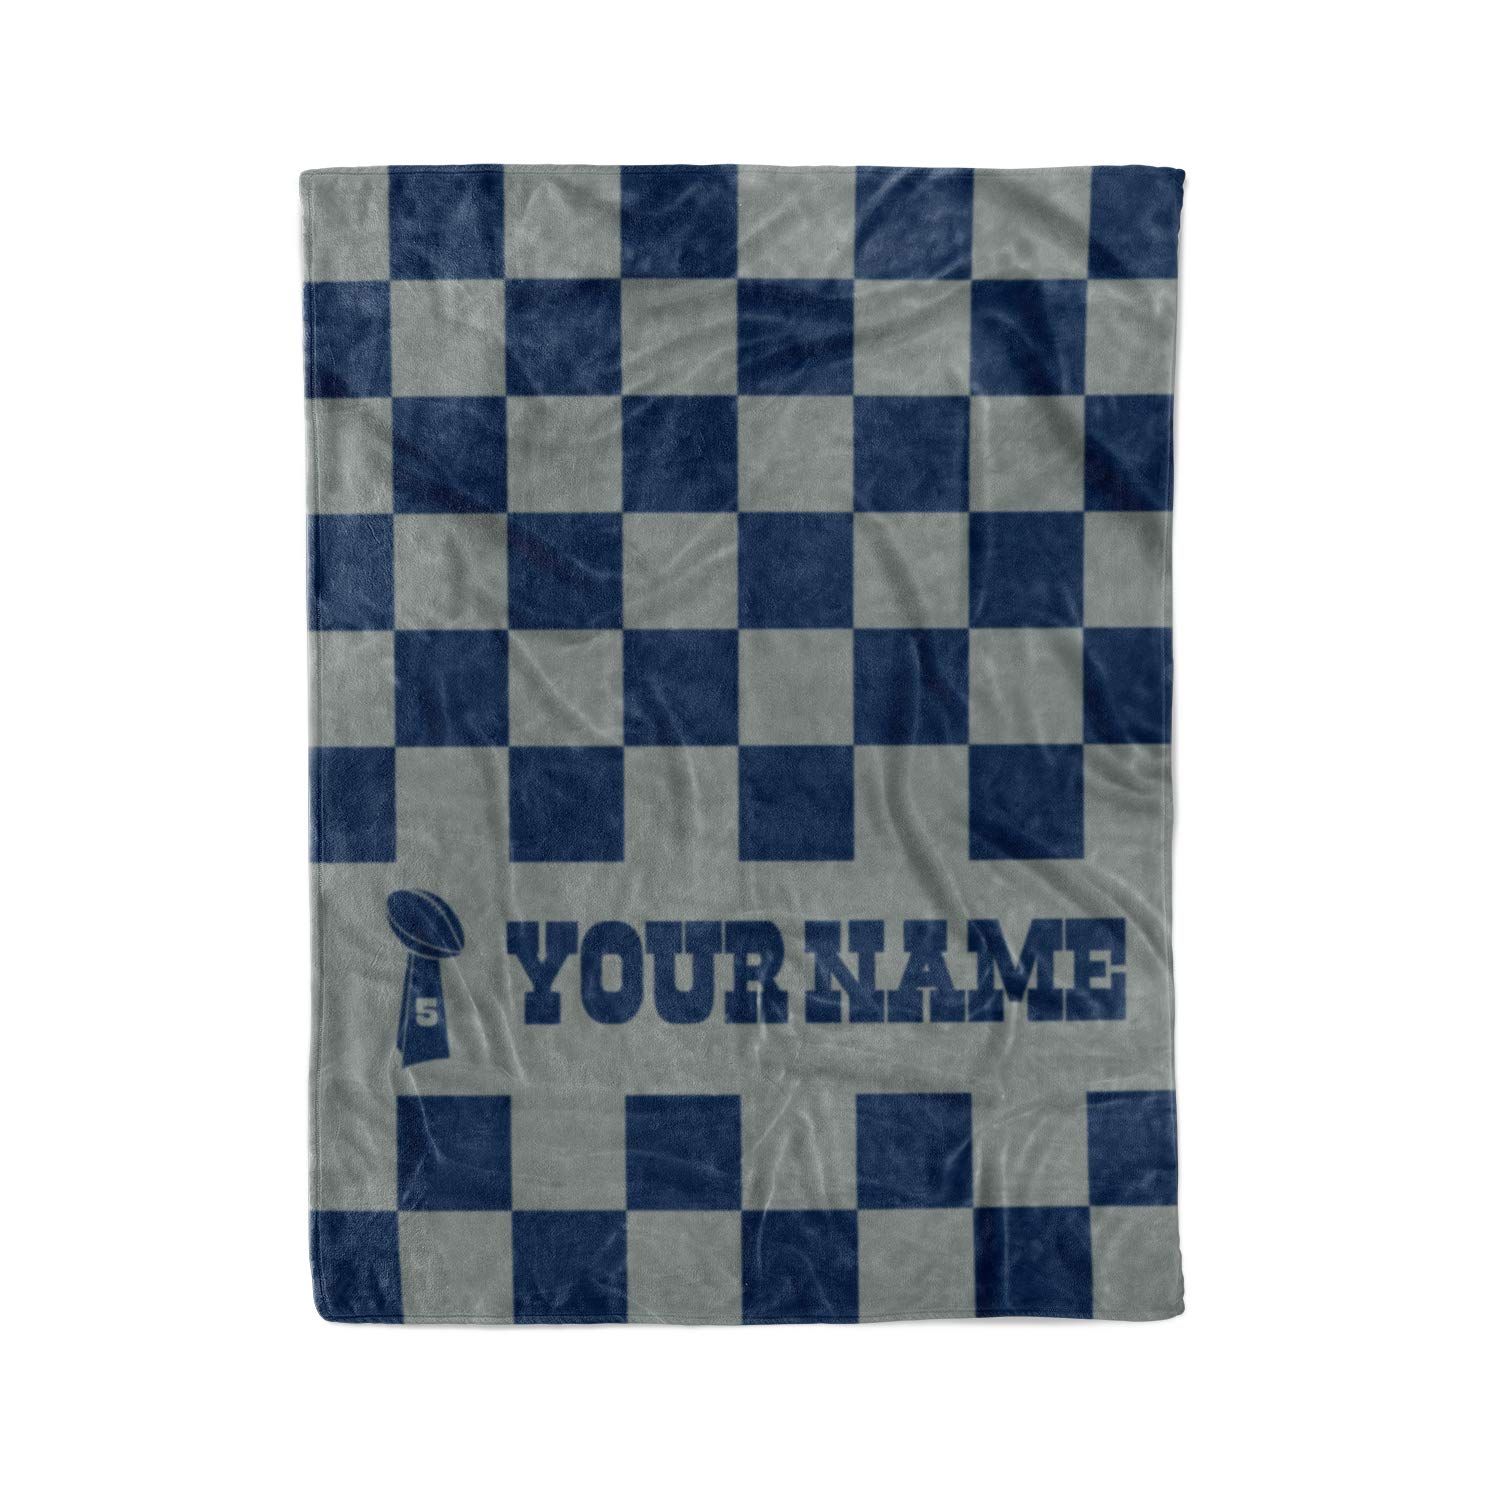 9d33e511a Personalized Corner Custom Dallas Cowboys Colors Themed Fleece Throw  Blanket - Gifts for Football Fans Men Women Kids Man Cave Decor Mens Womens  ...